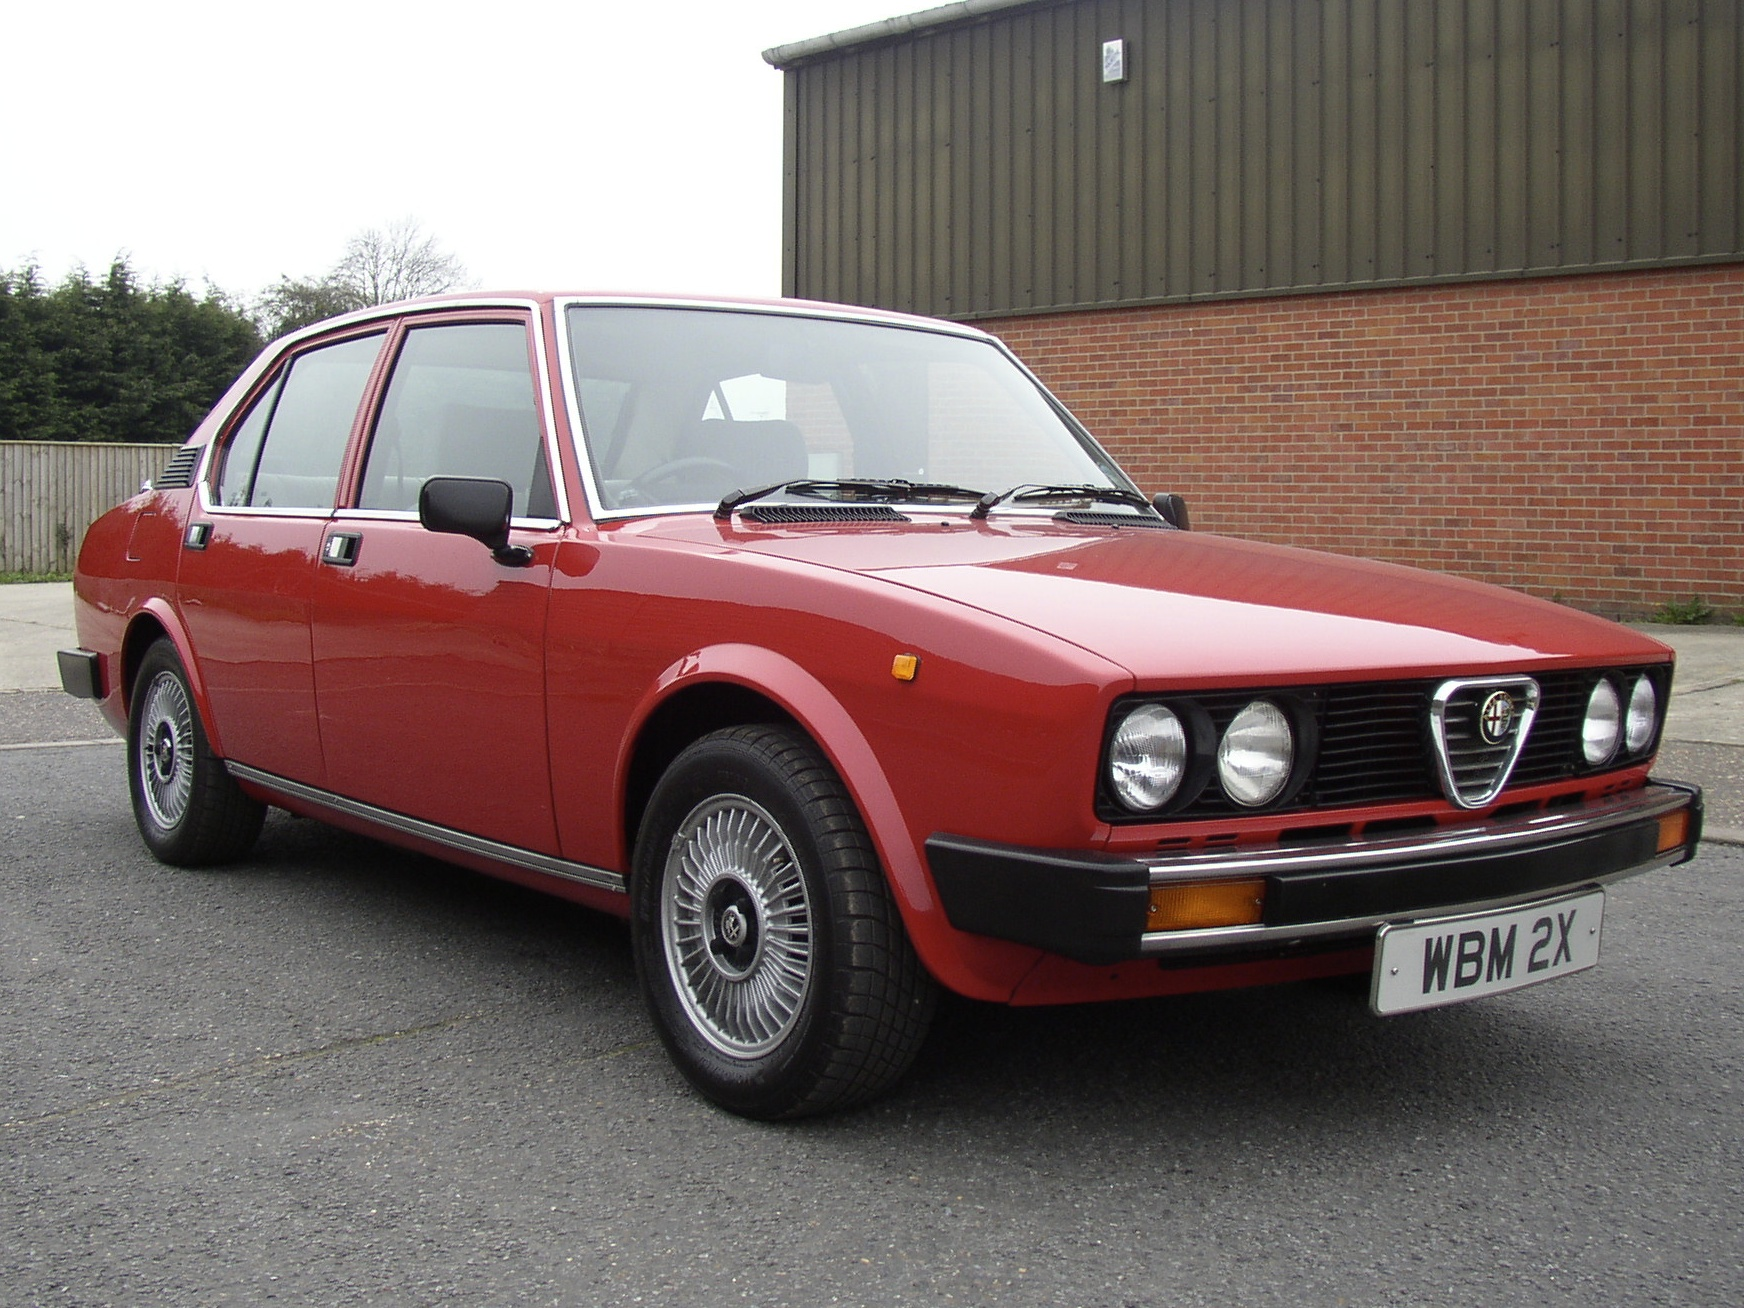 Click image for larger version  Name:Alfetta frontquarter.JPG Views:31 Size:784.4 KB ID:161730